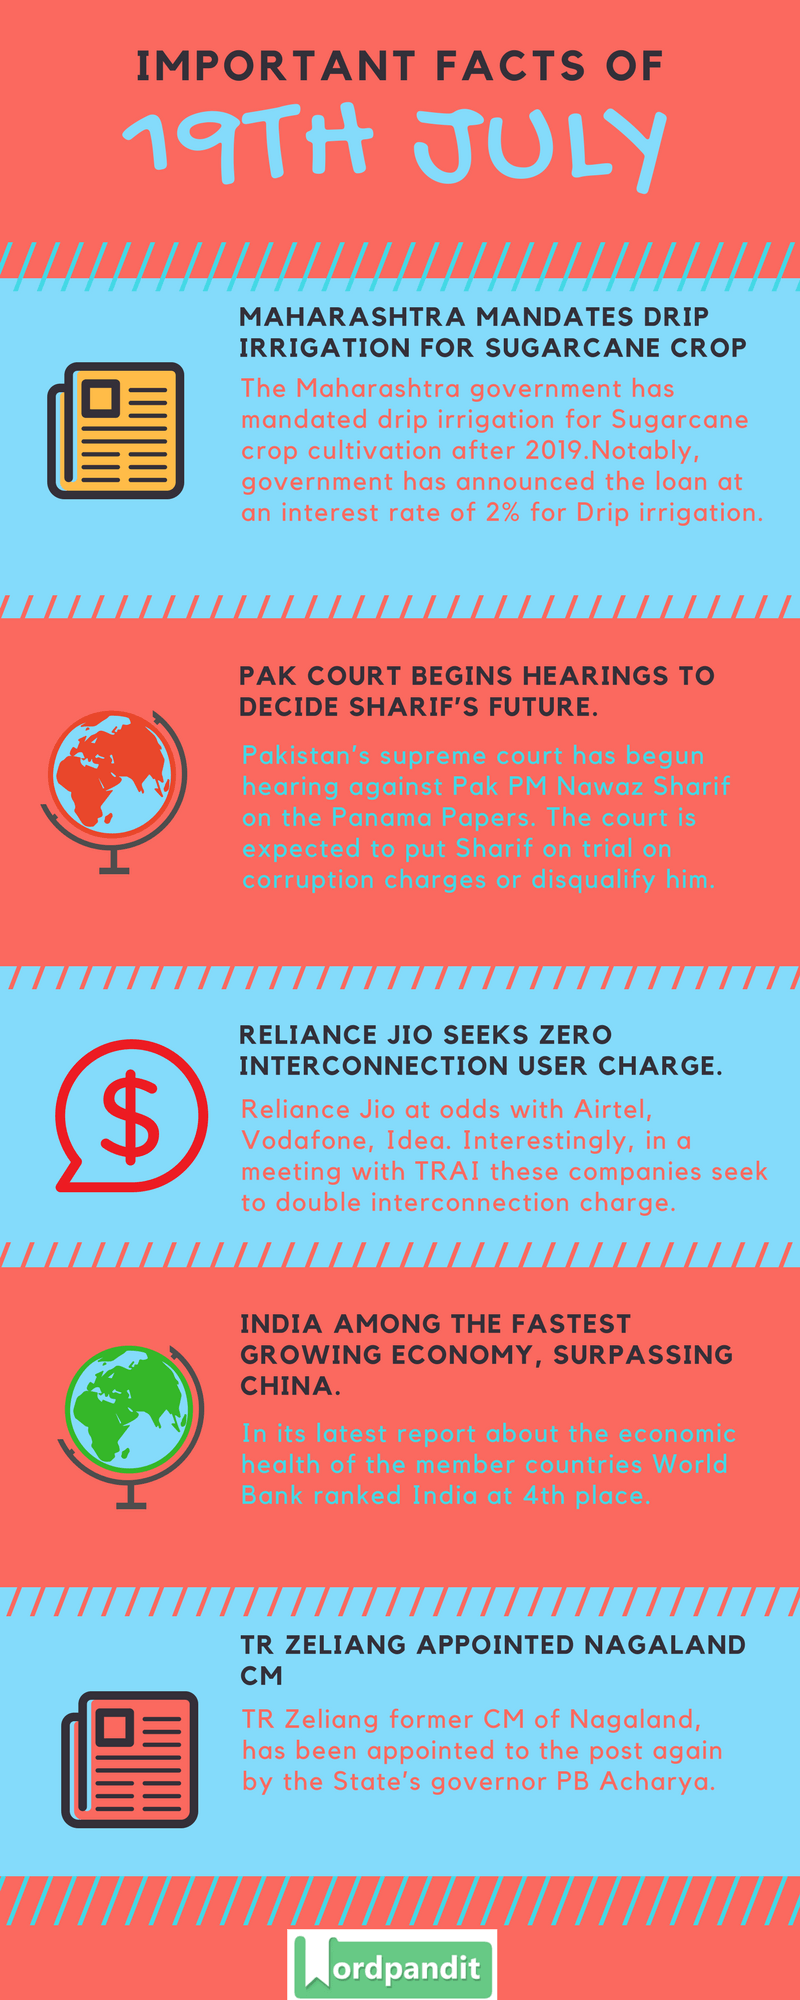 Daily-Current-Affairs-19-july-2017-Current-Affairs-Quiz-july-19-2017-Current-Affairs-Infographic